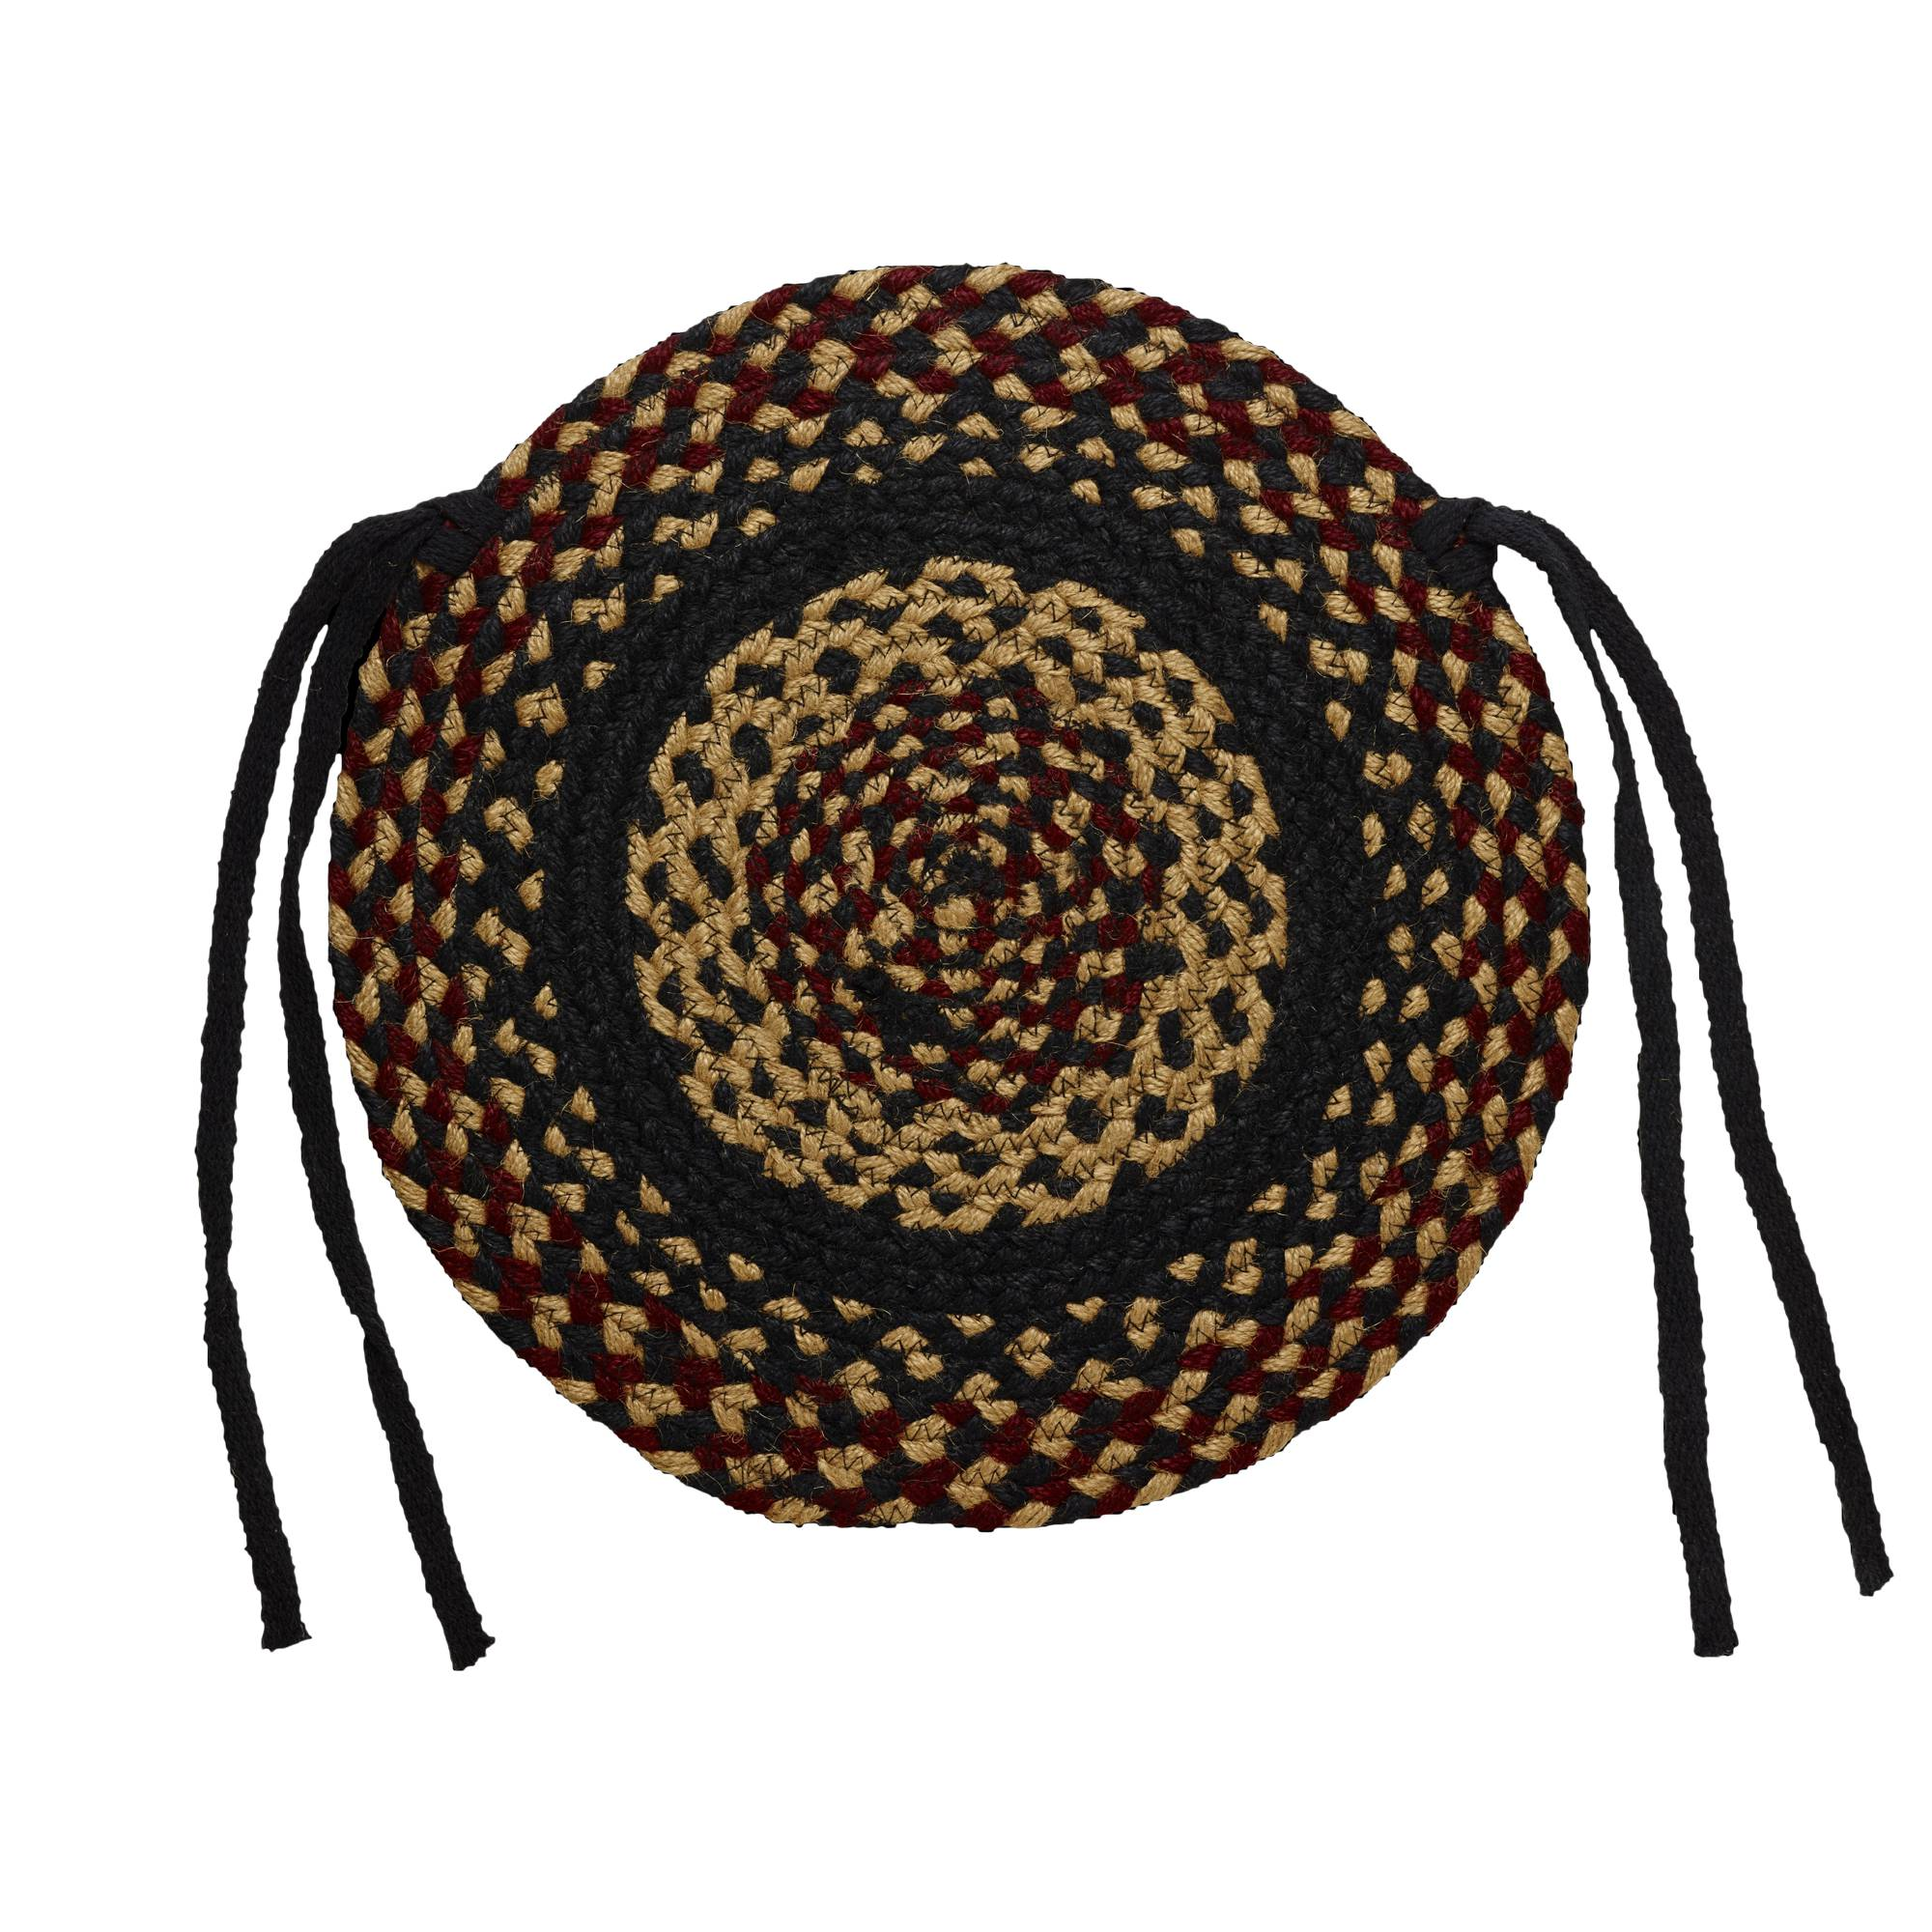 Perfect Braided Chair Pads Country Primitive By IHF   Set Of 4   Walmart.com